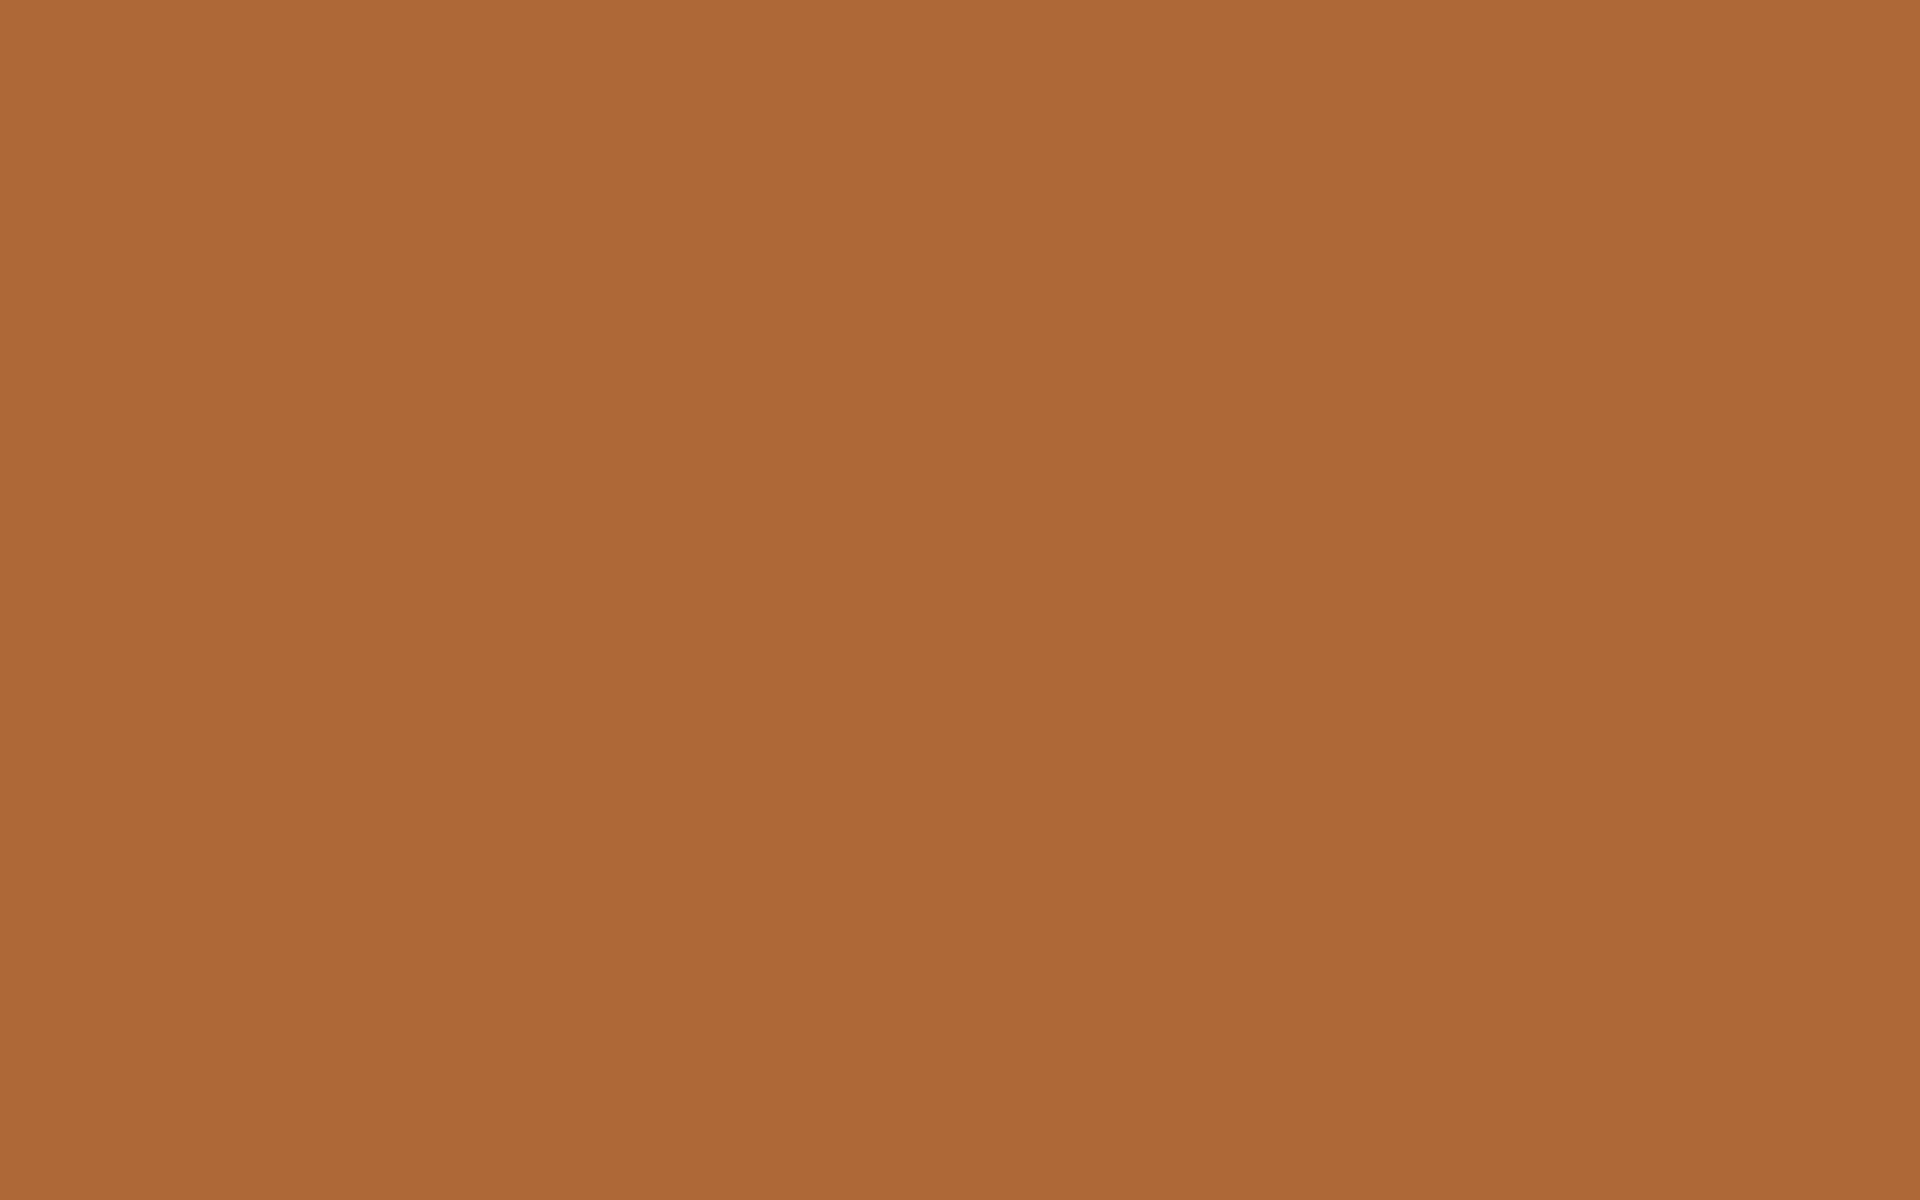 1920x1200 Windsor Tan Solid Color Background